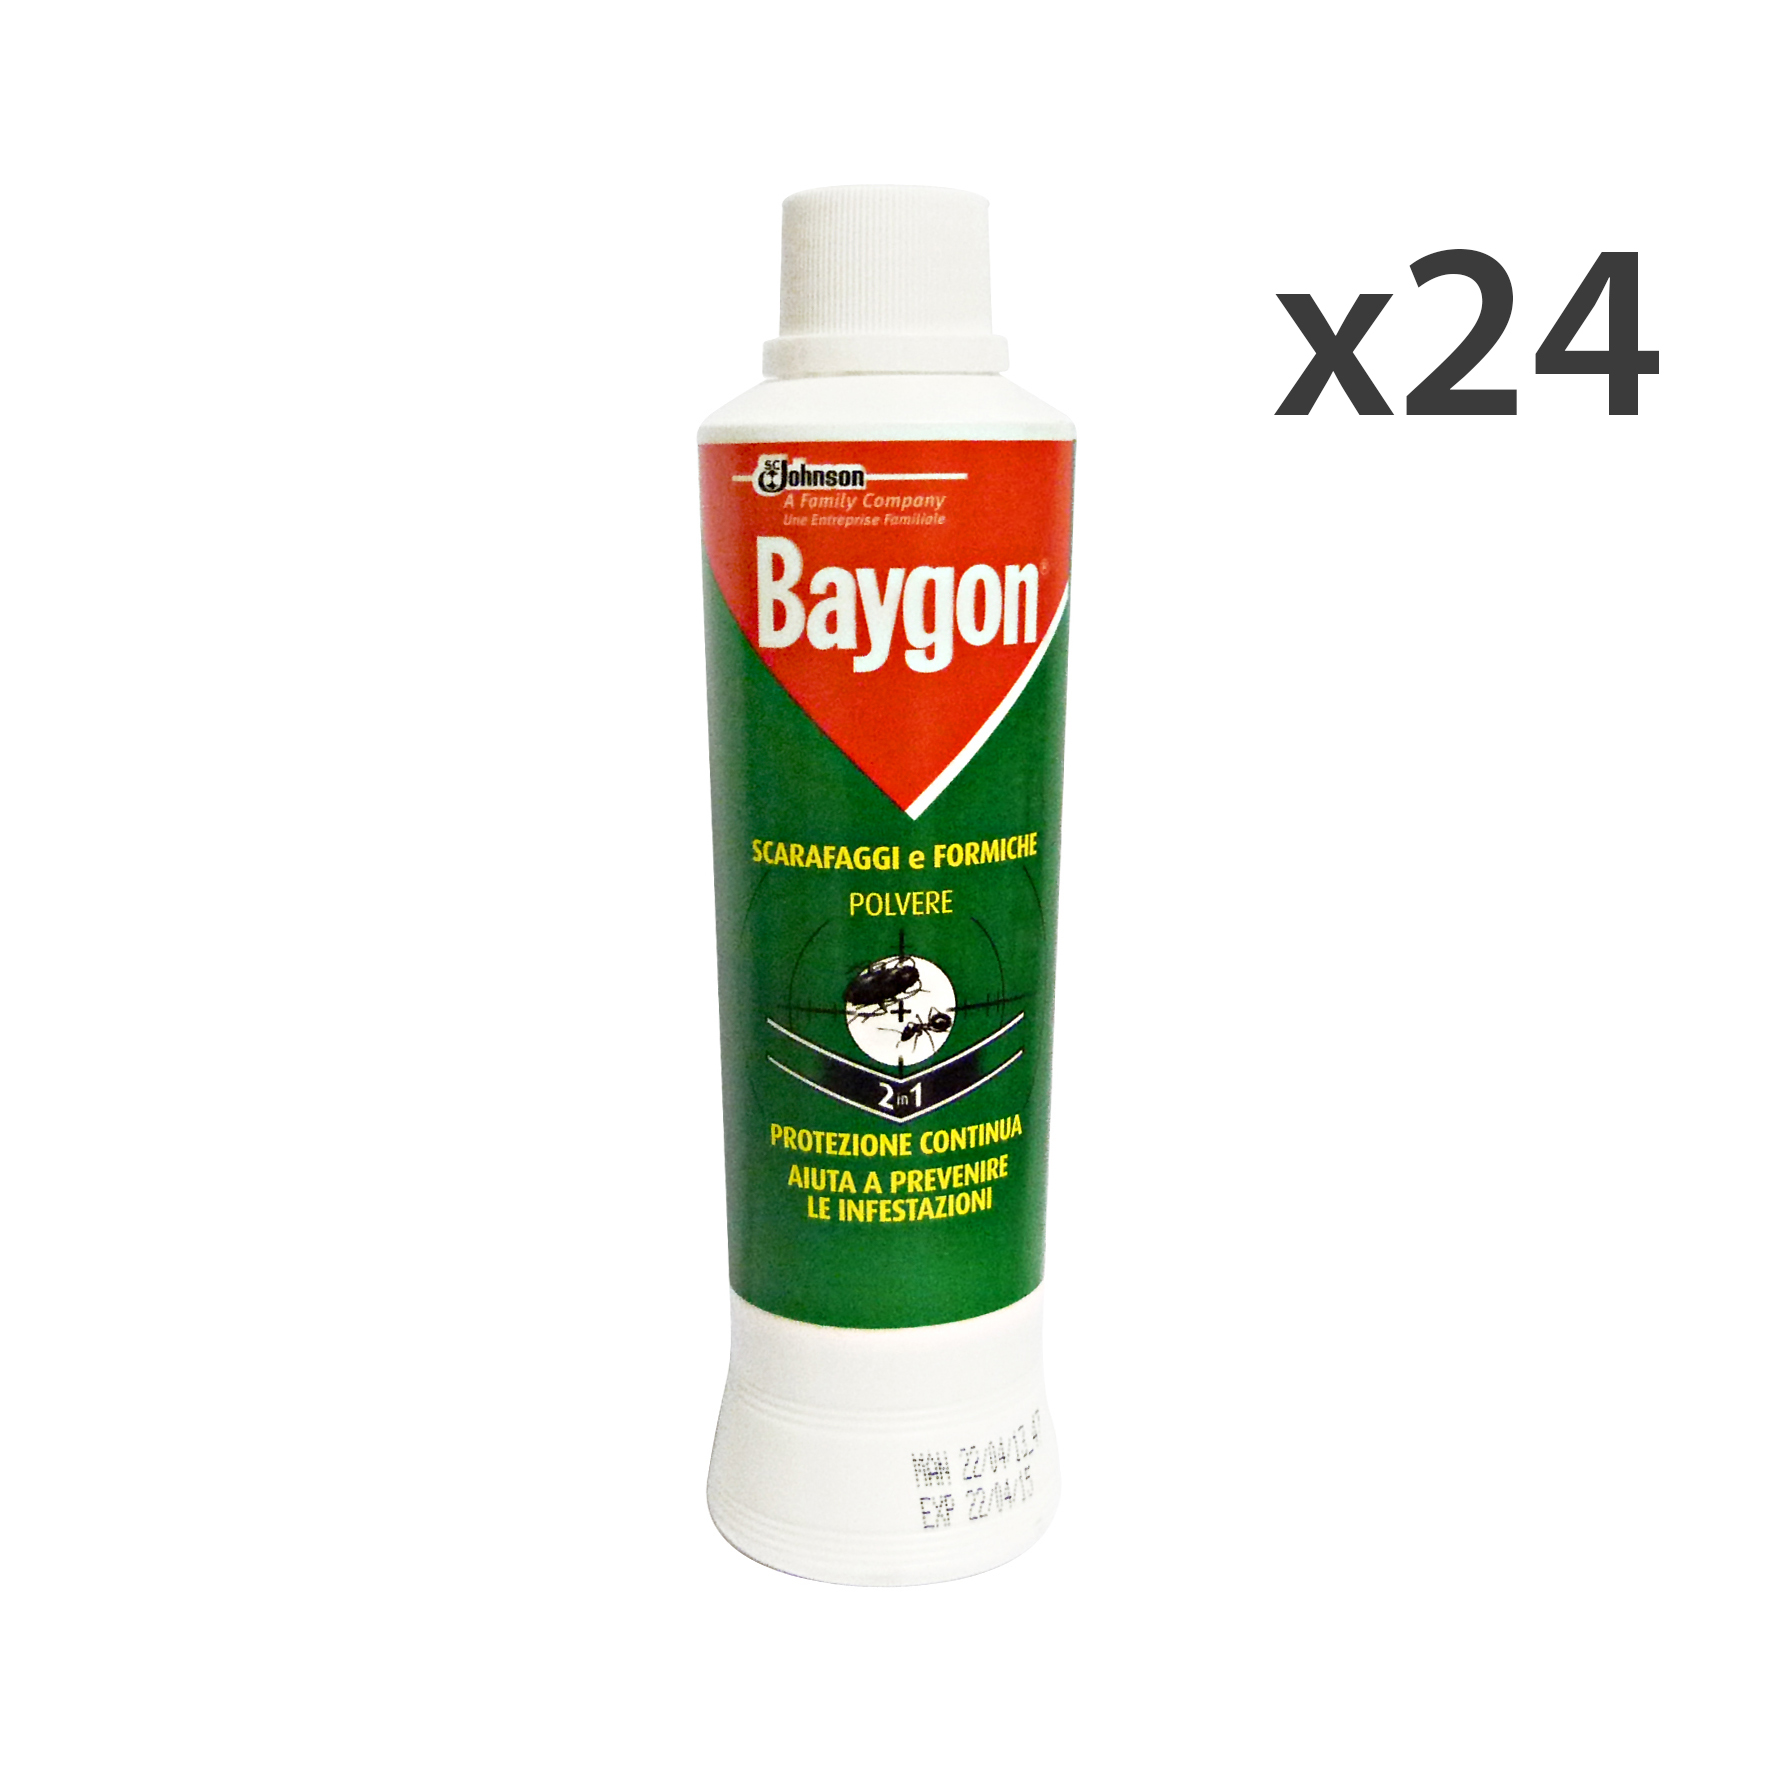 Set 24 Baygon Scar./form.polvere 250 Gr. - Insecticides Insectifuges